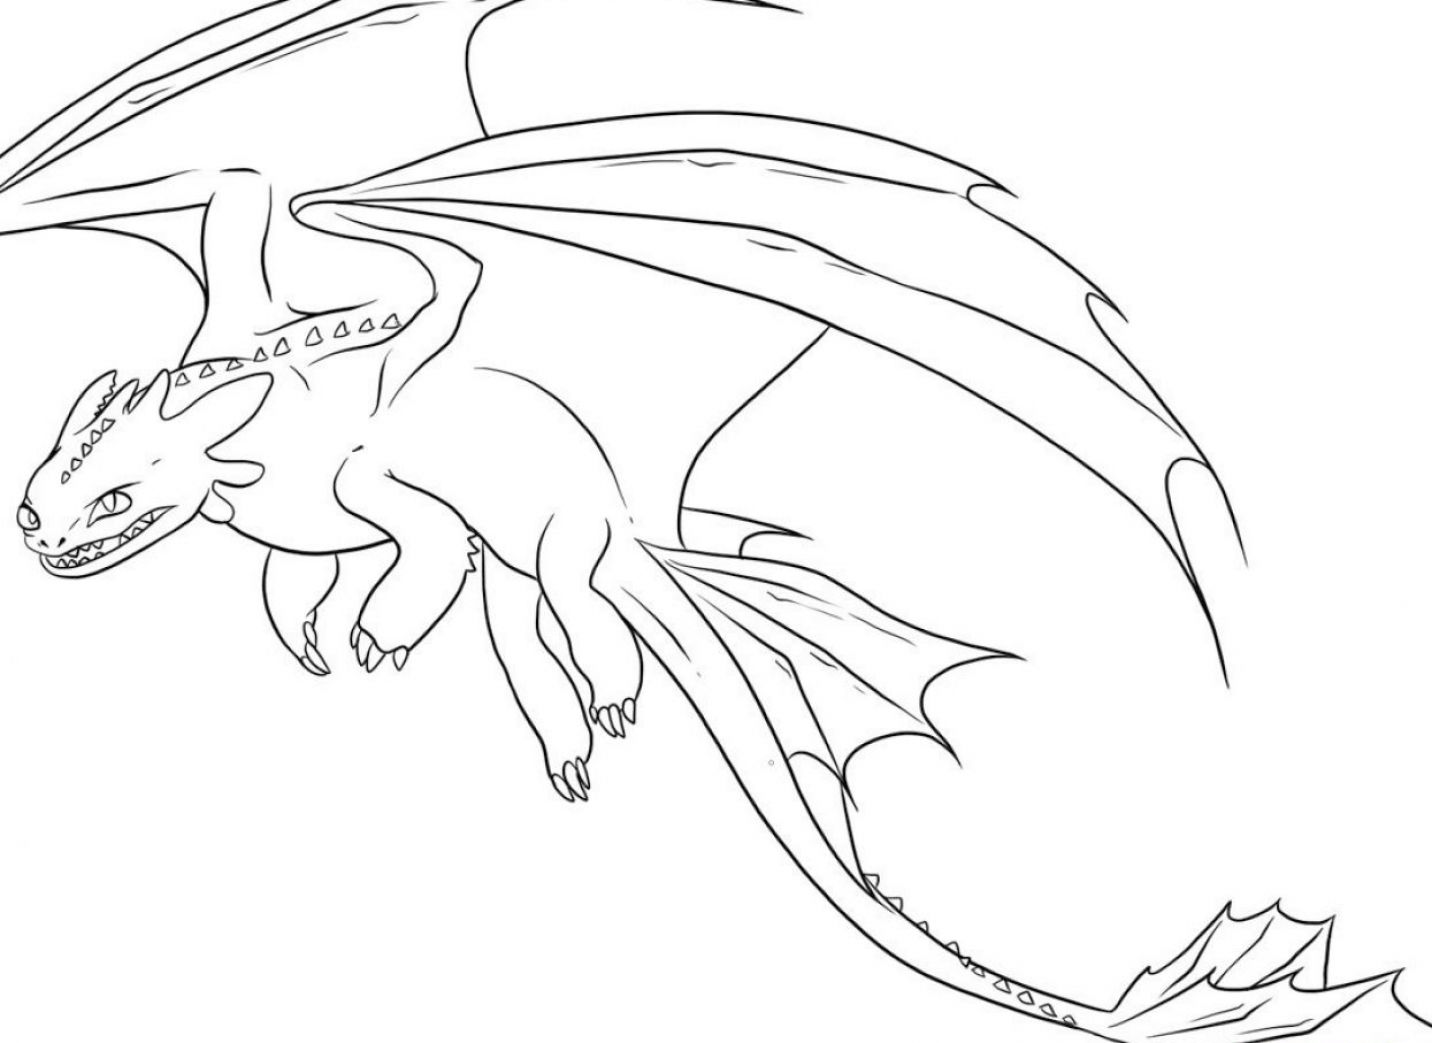 Coloring Pages Dragons : Free printable dragon coloring pages for kids